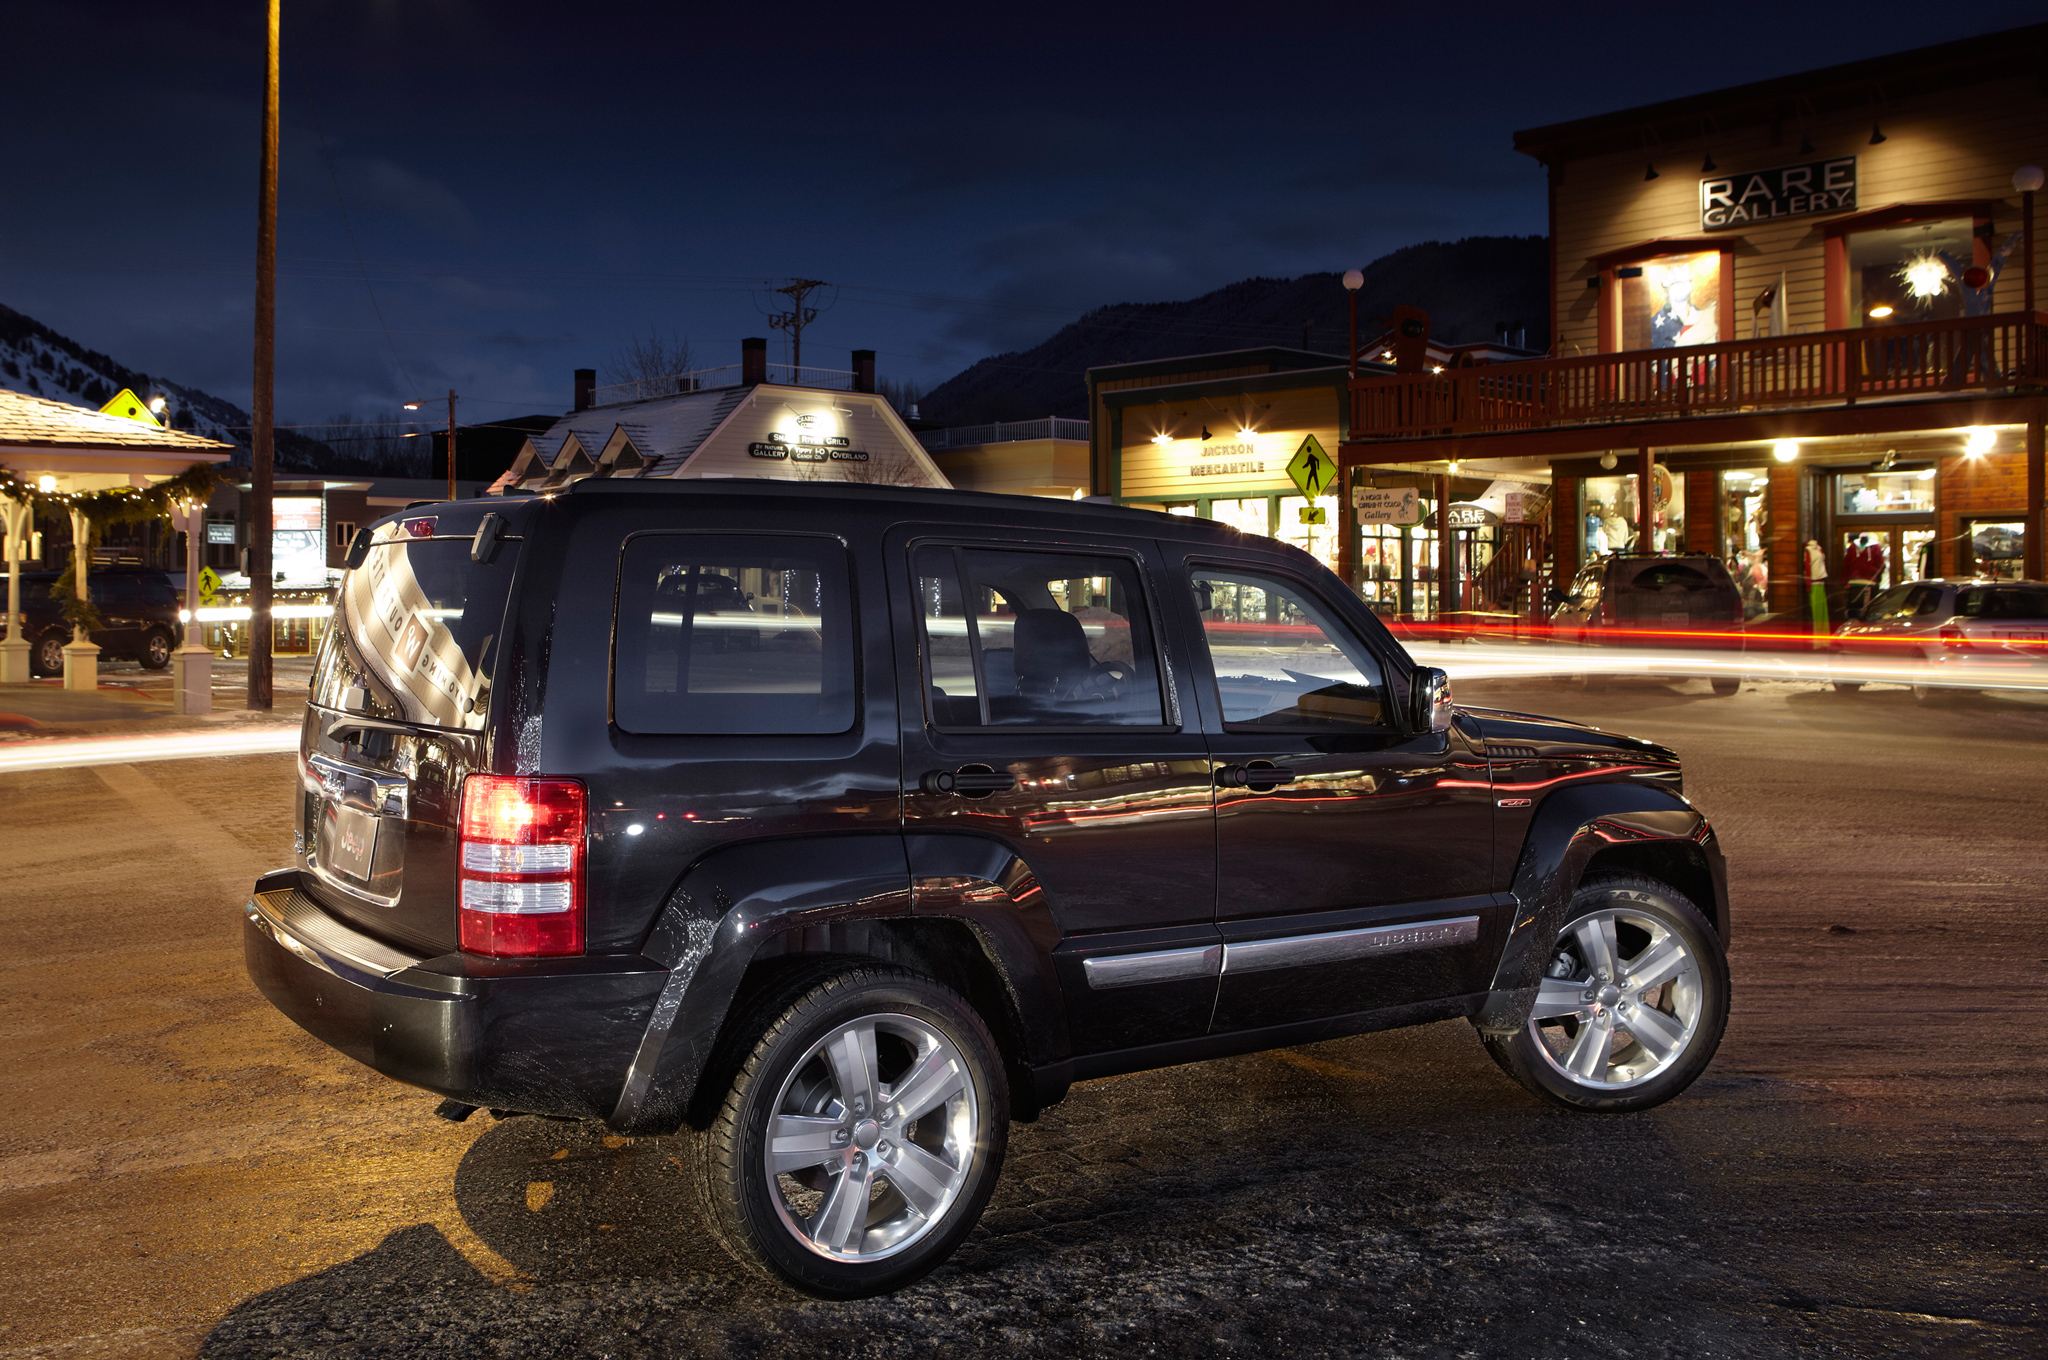 2011 Jeep Liberty Information and photos ZombieDrive